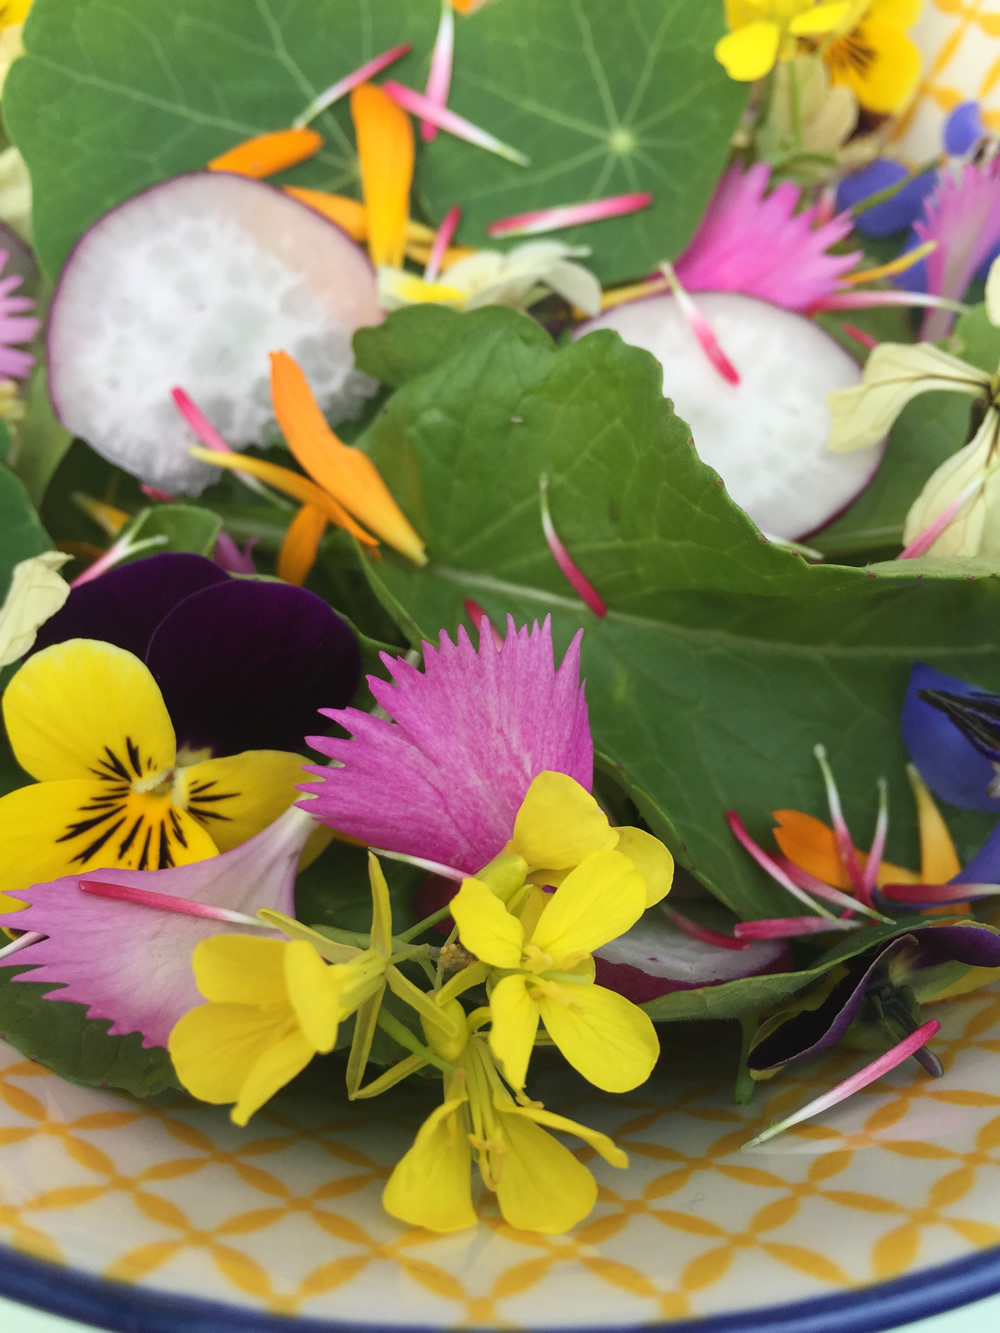 A bowl of colourful edible flowers salad